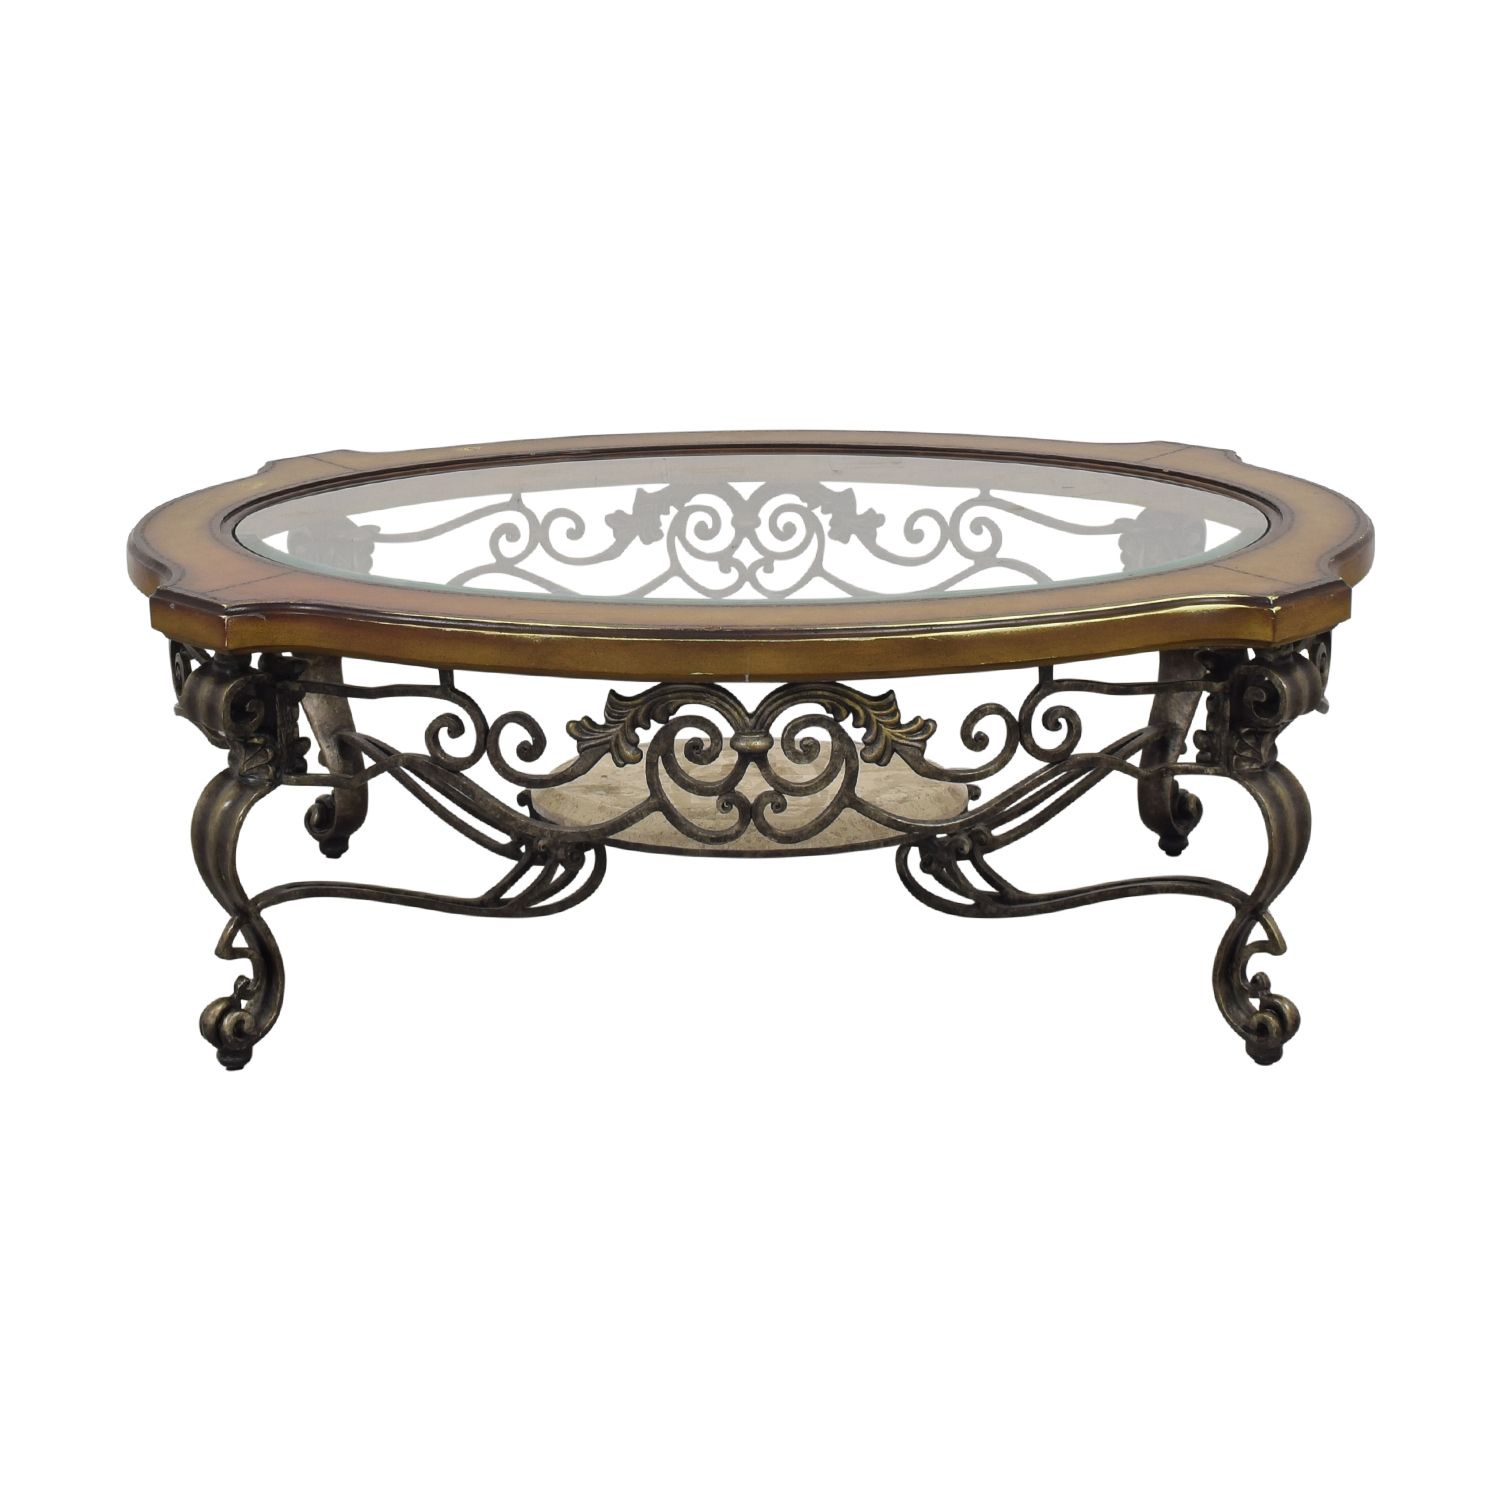 Thomasville Thomasville Style Oval Coffee Table ct